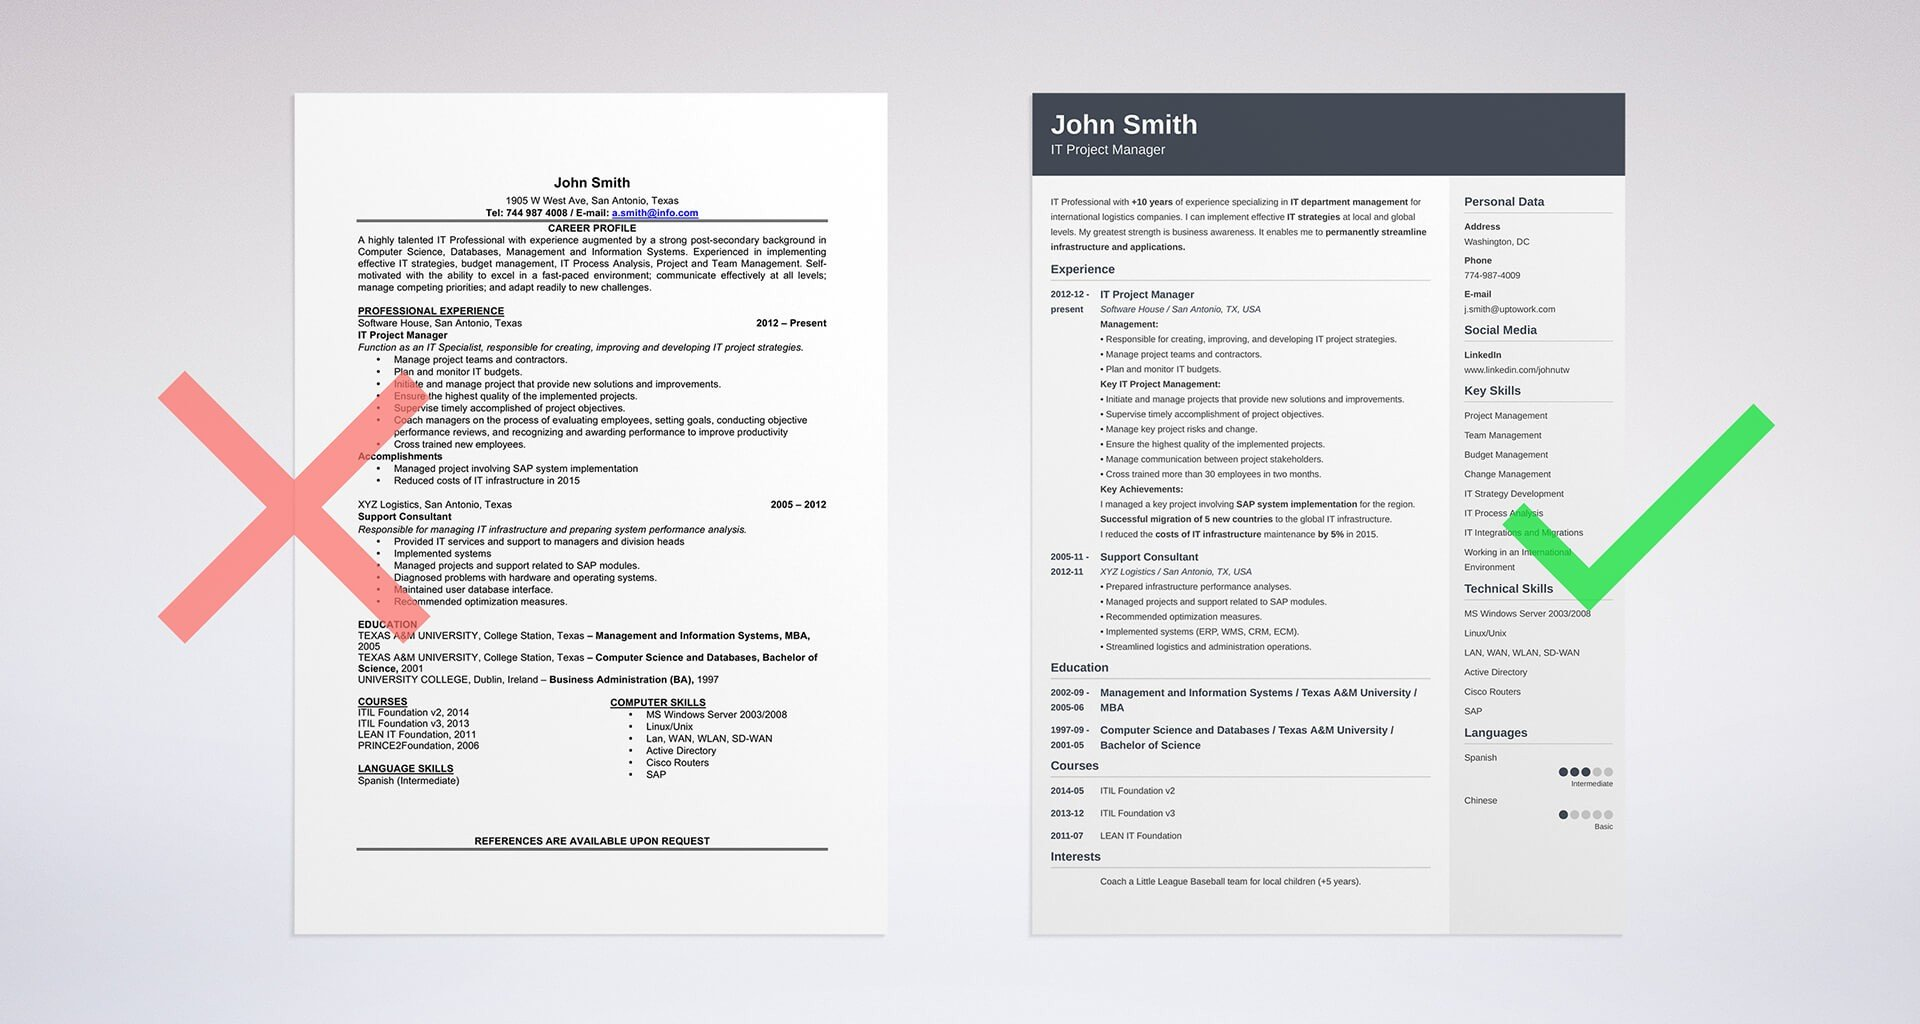 best resume builders free paid features caregiver description for wordpress theme dswd Resume Best Resume Online Free